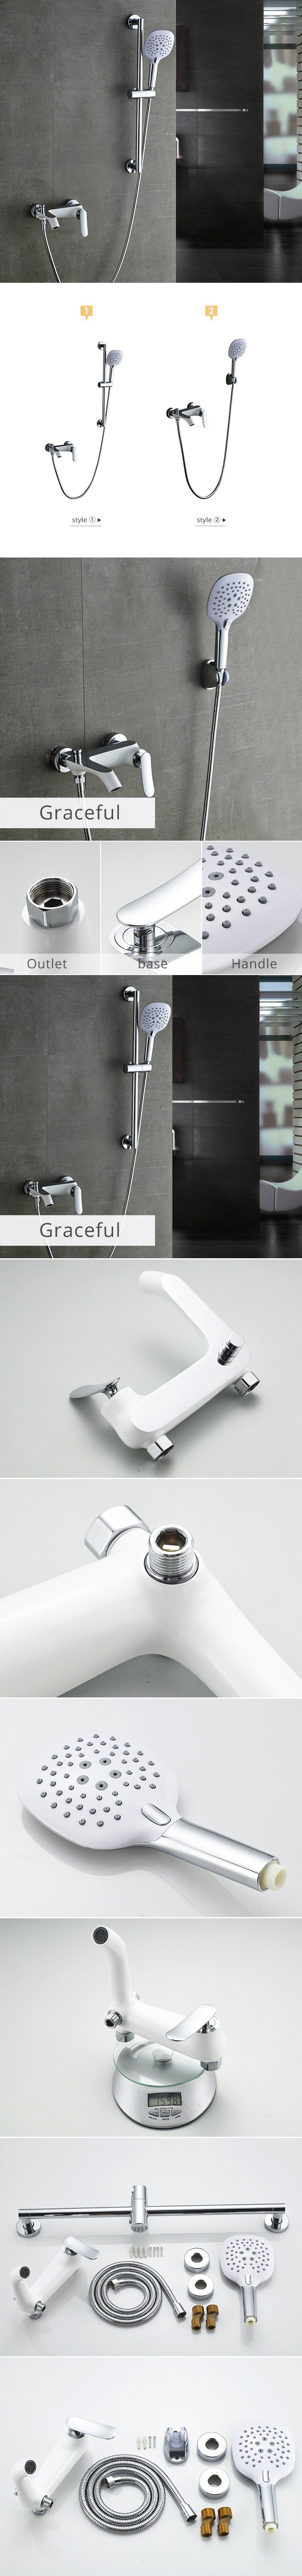 Flg 3 Function White Painting Chromed Shower Sets with Hand Shower and Head Shower